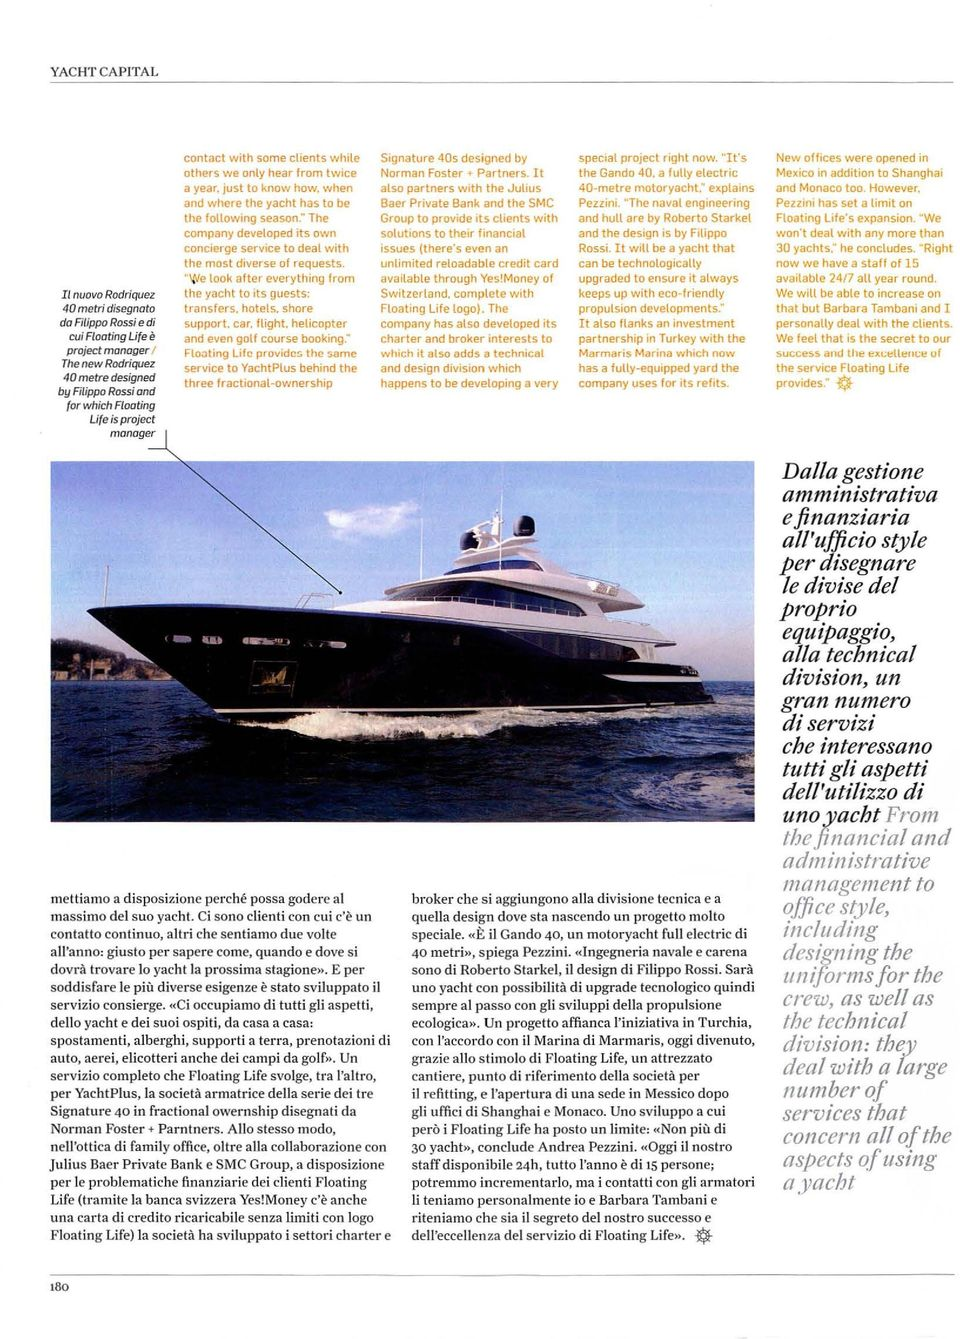 """ The company developed its own conci erge service to dea l with the most diverse of requests. e look alter everything l rom the yacht to 1ts guests: transfers. hotels, shore support."